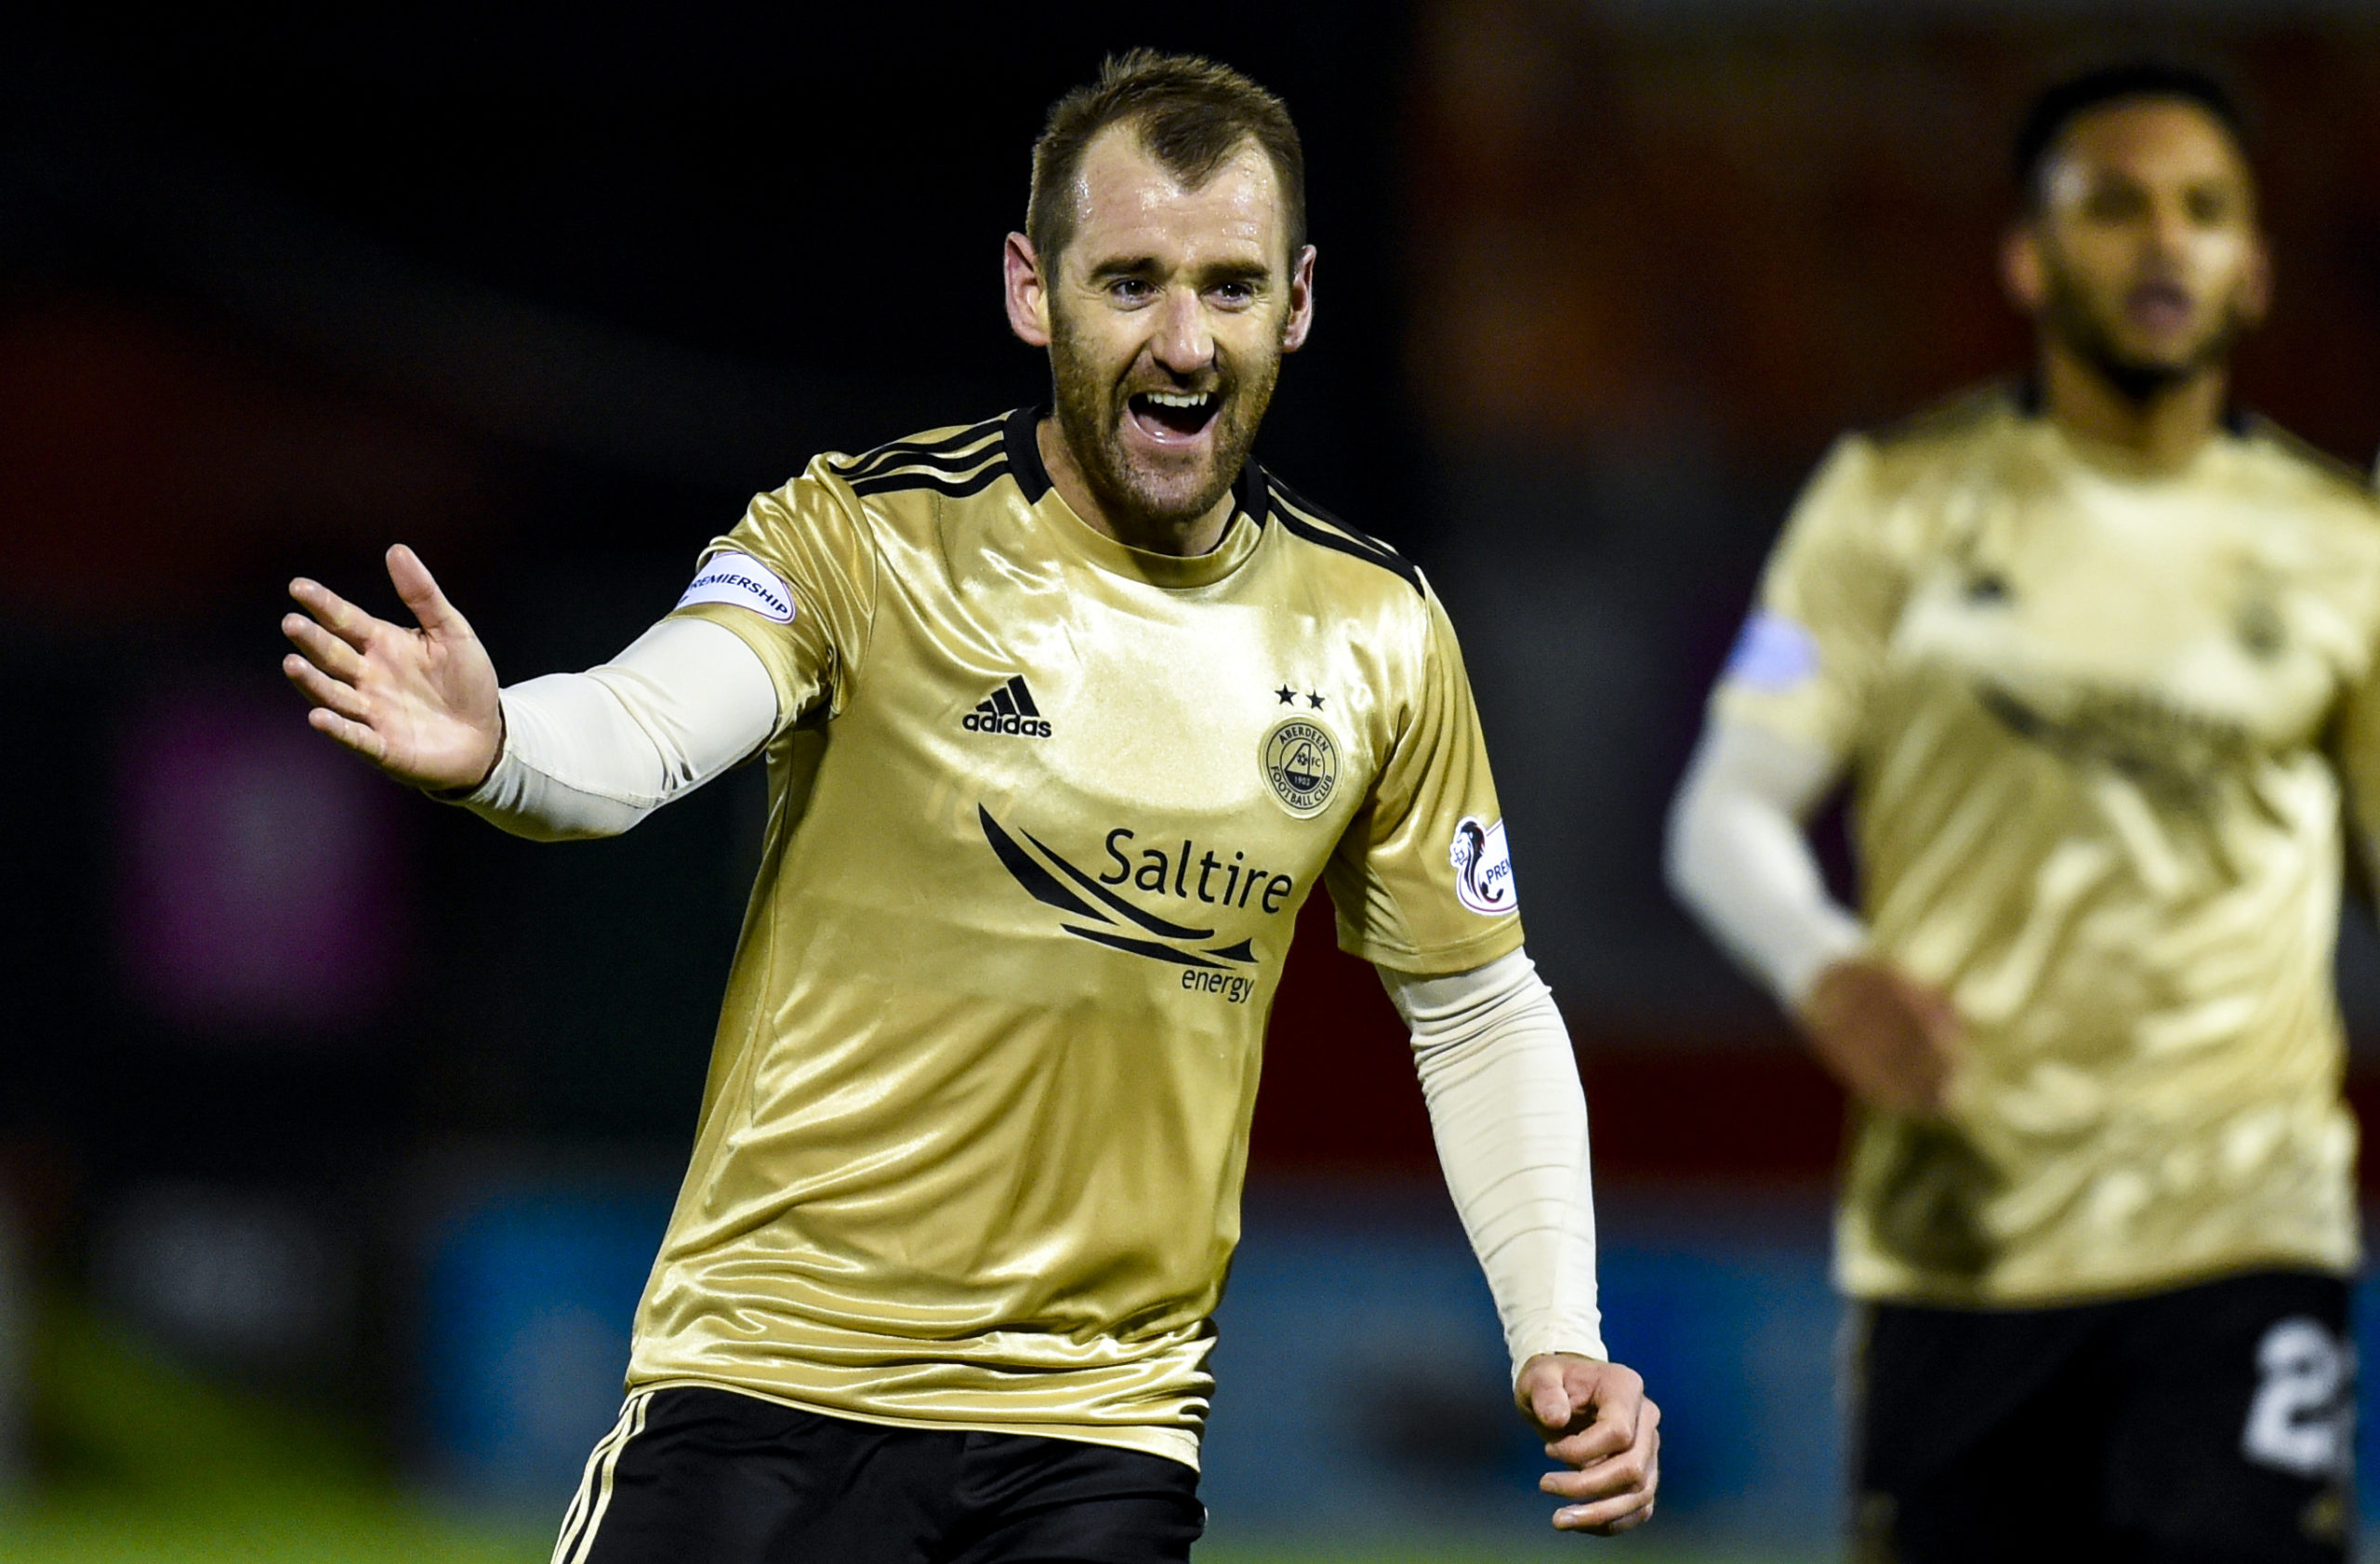 Niall McGinn celebrates after scoring to make it 2-0 to the Dons